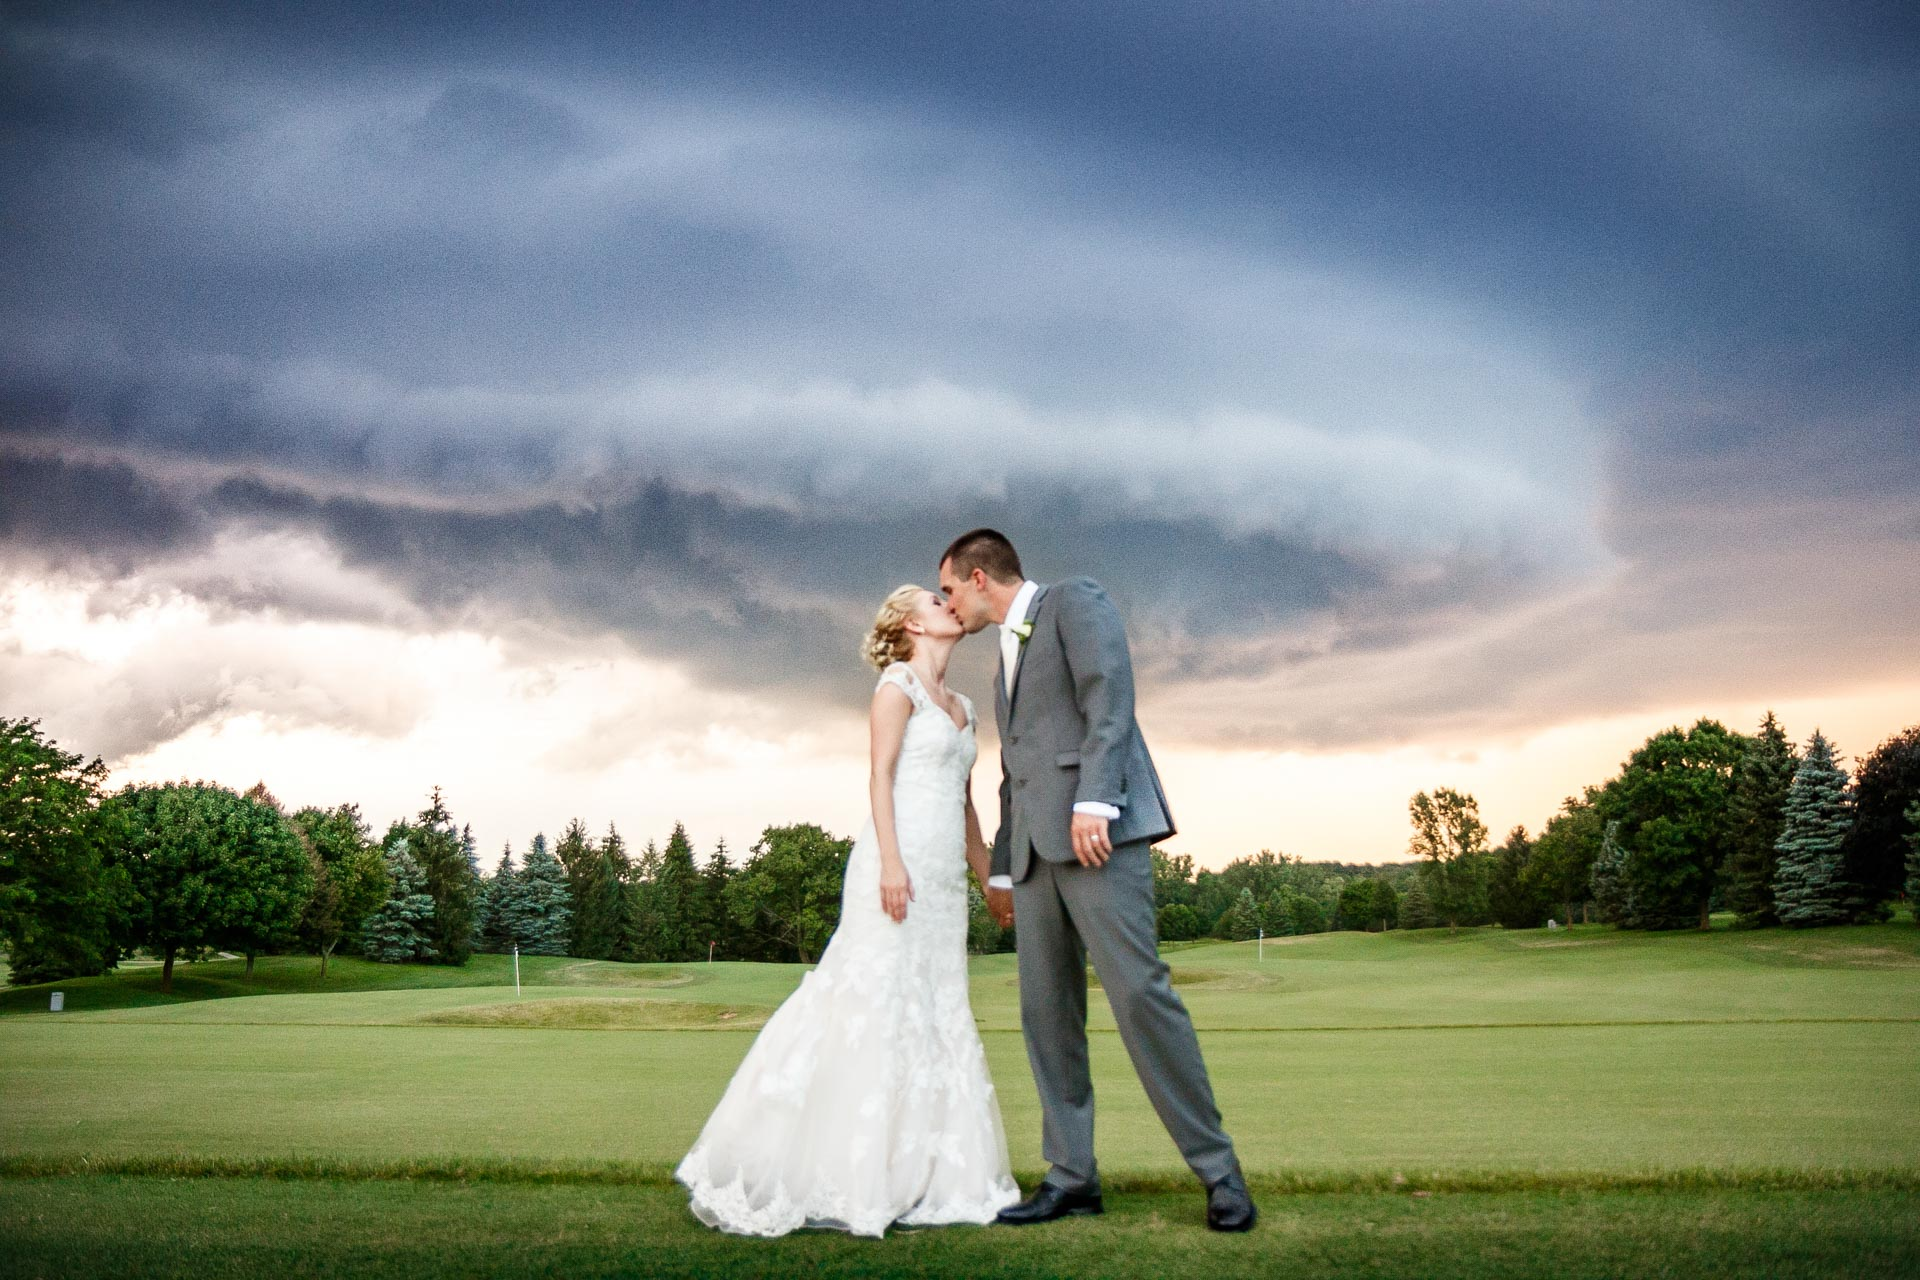 Bride and Groom | Thunderstorm